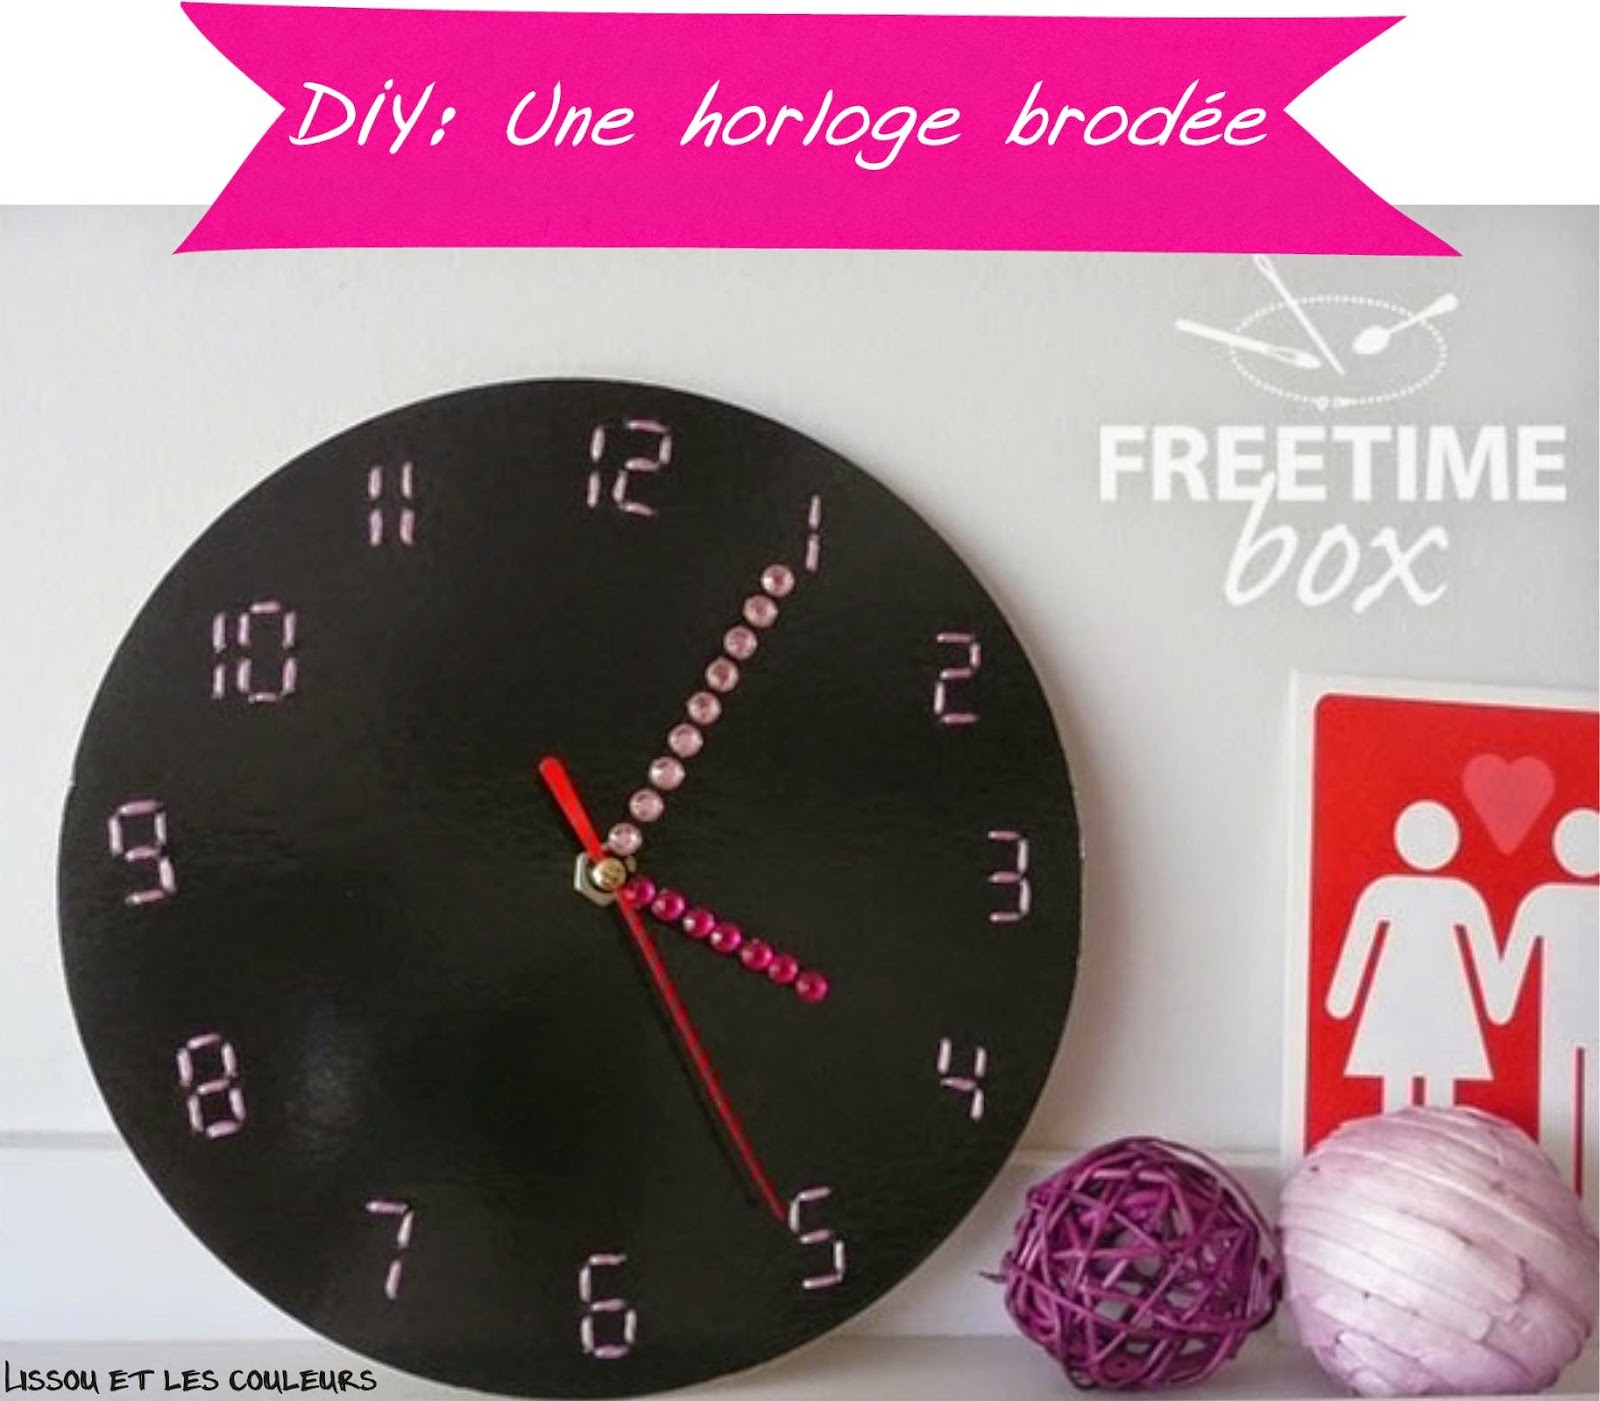 http://www.freetimebox.com/blog/box4-horloge-brodee-alice/